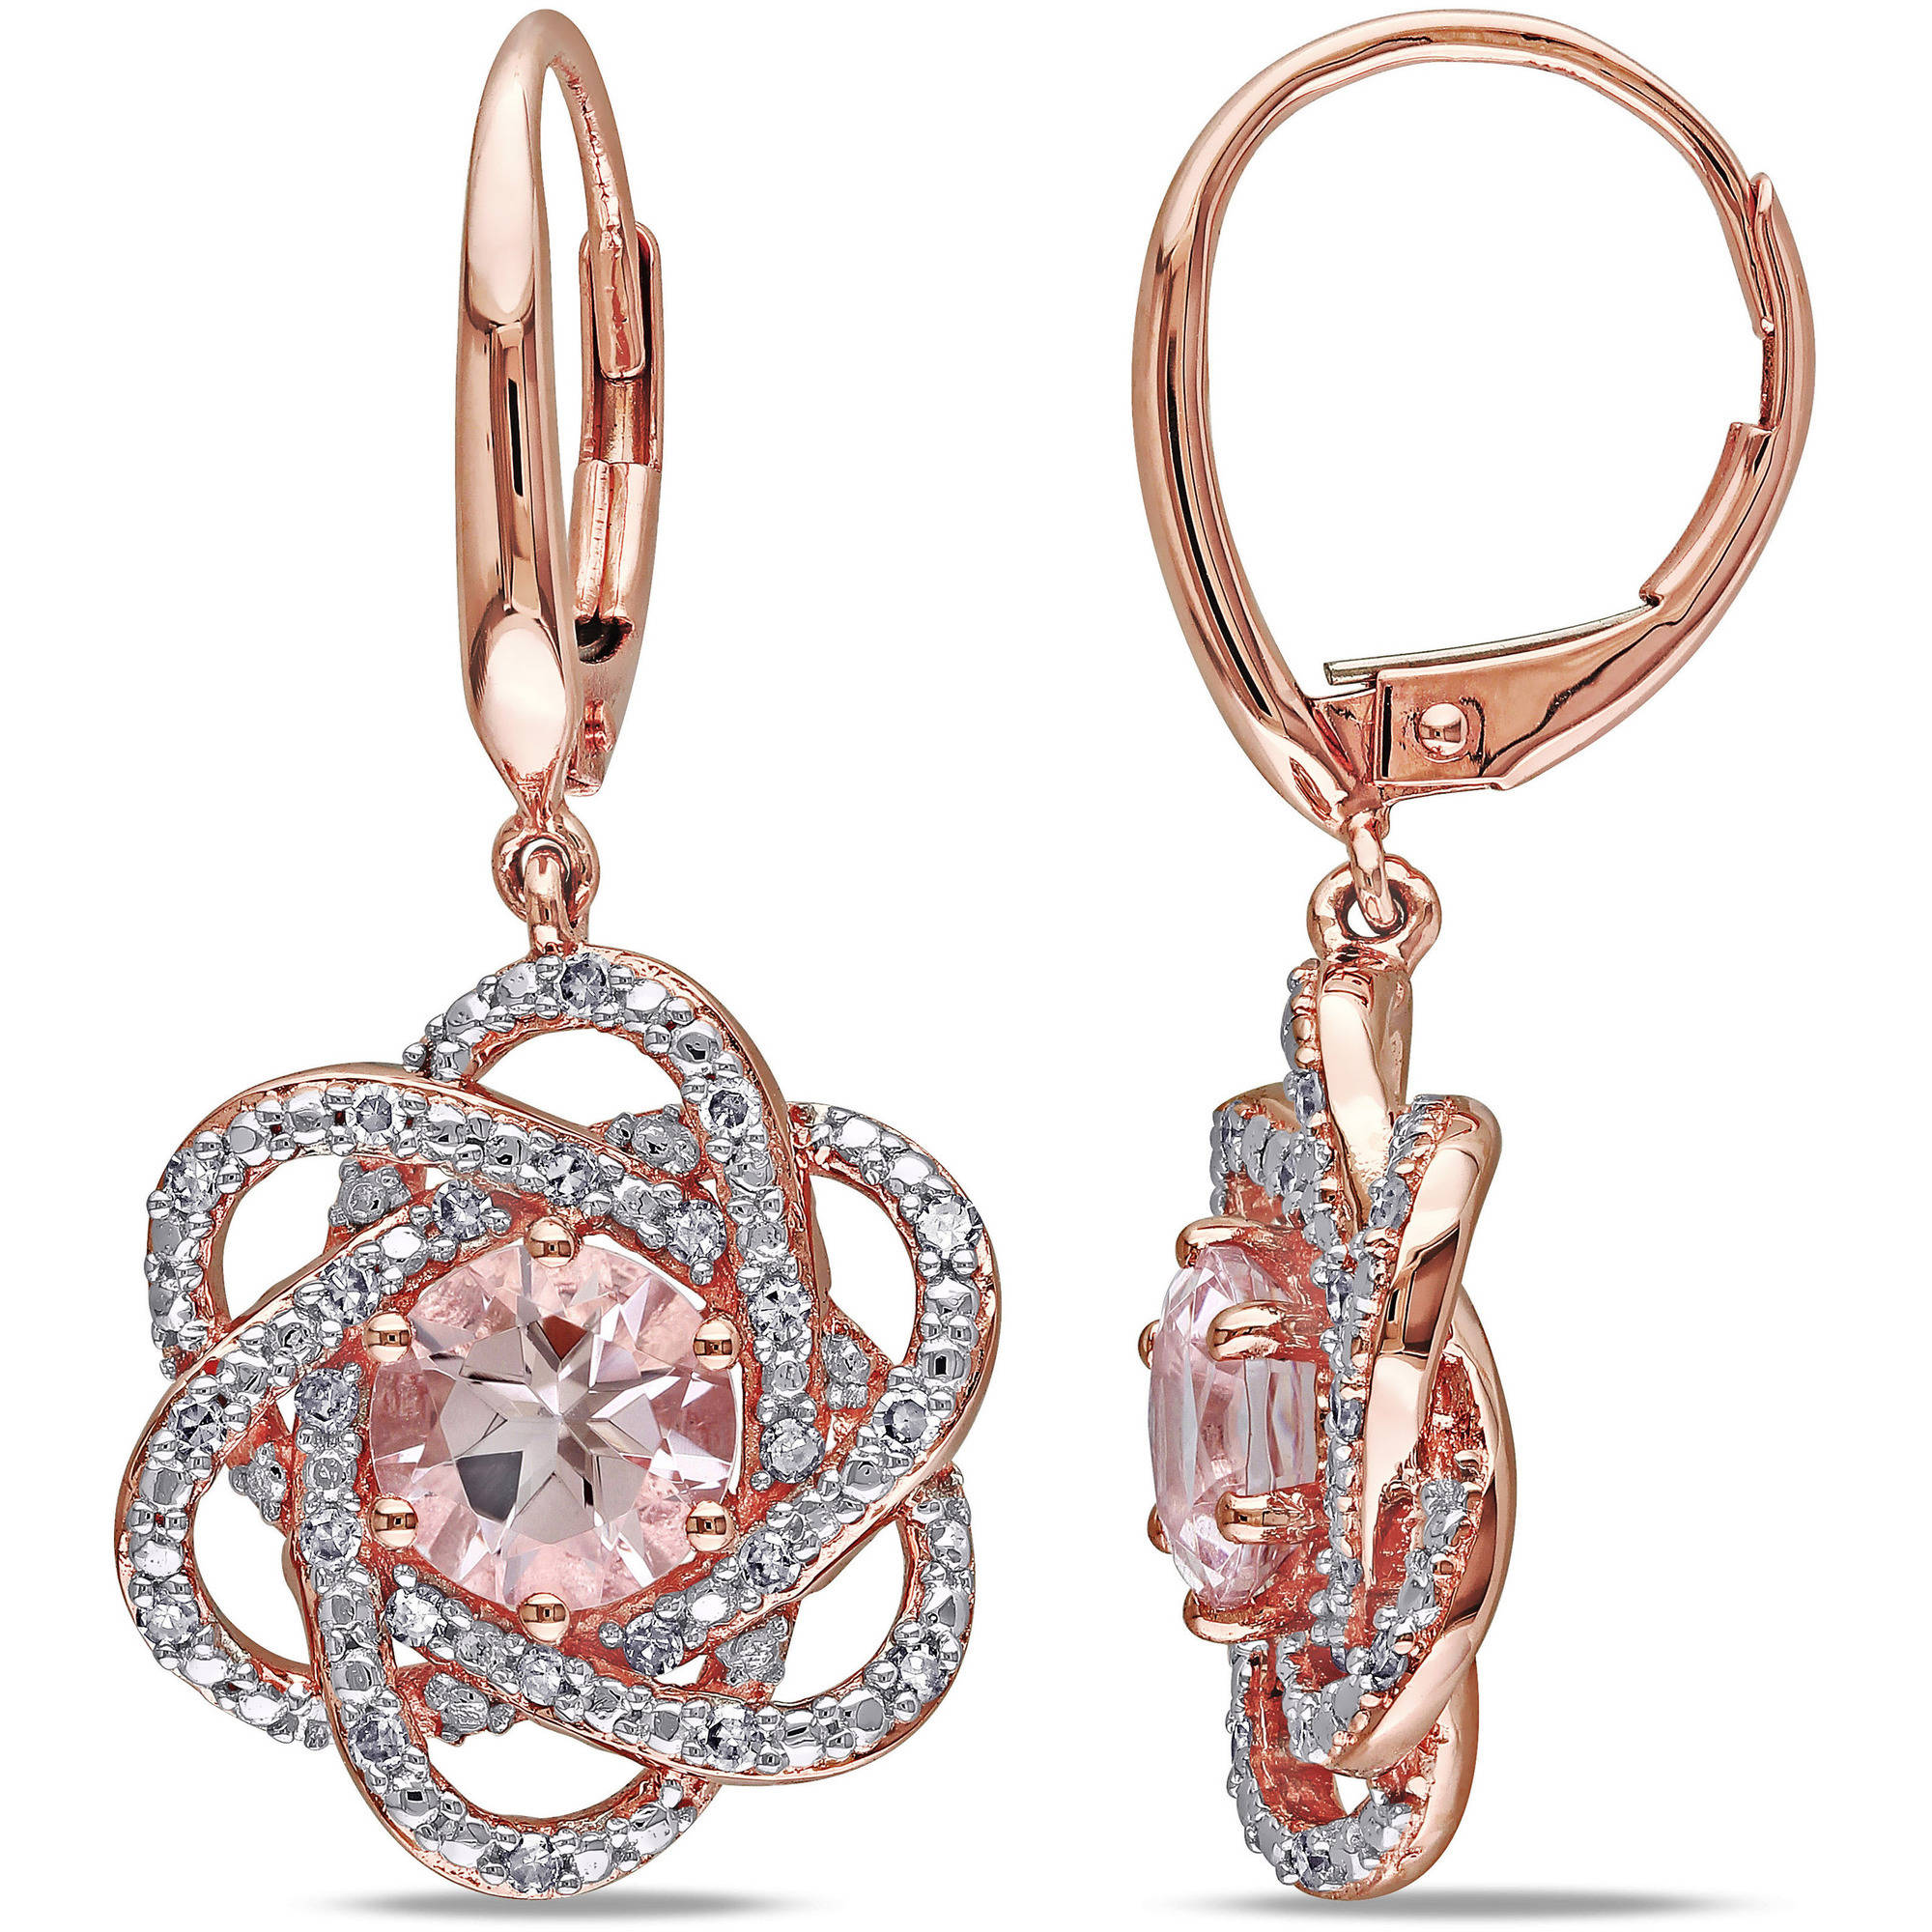 Tangelo 1-3/4 Carat T.G.W. Morganite and 1/4 Carat T.W. Diamond 10kt Rose Gold Leverback Dangle Earrings